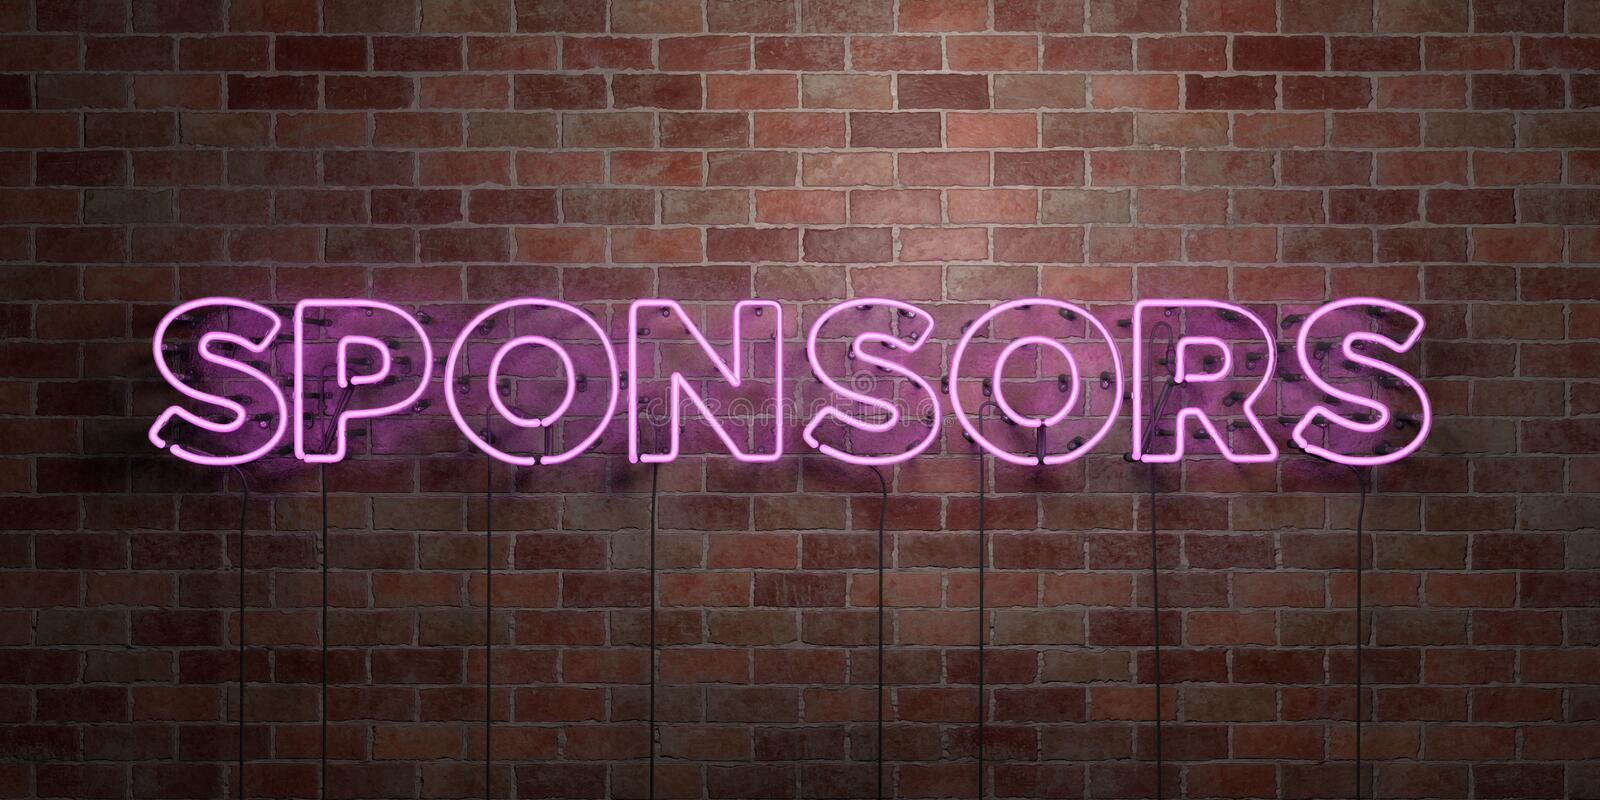 SPONSORS - fluorescent Neon tube Sign on brickwork - Front view - 3D rendered royalty free stock picture. Can be used for online banner ads and direct mailers stock image